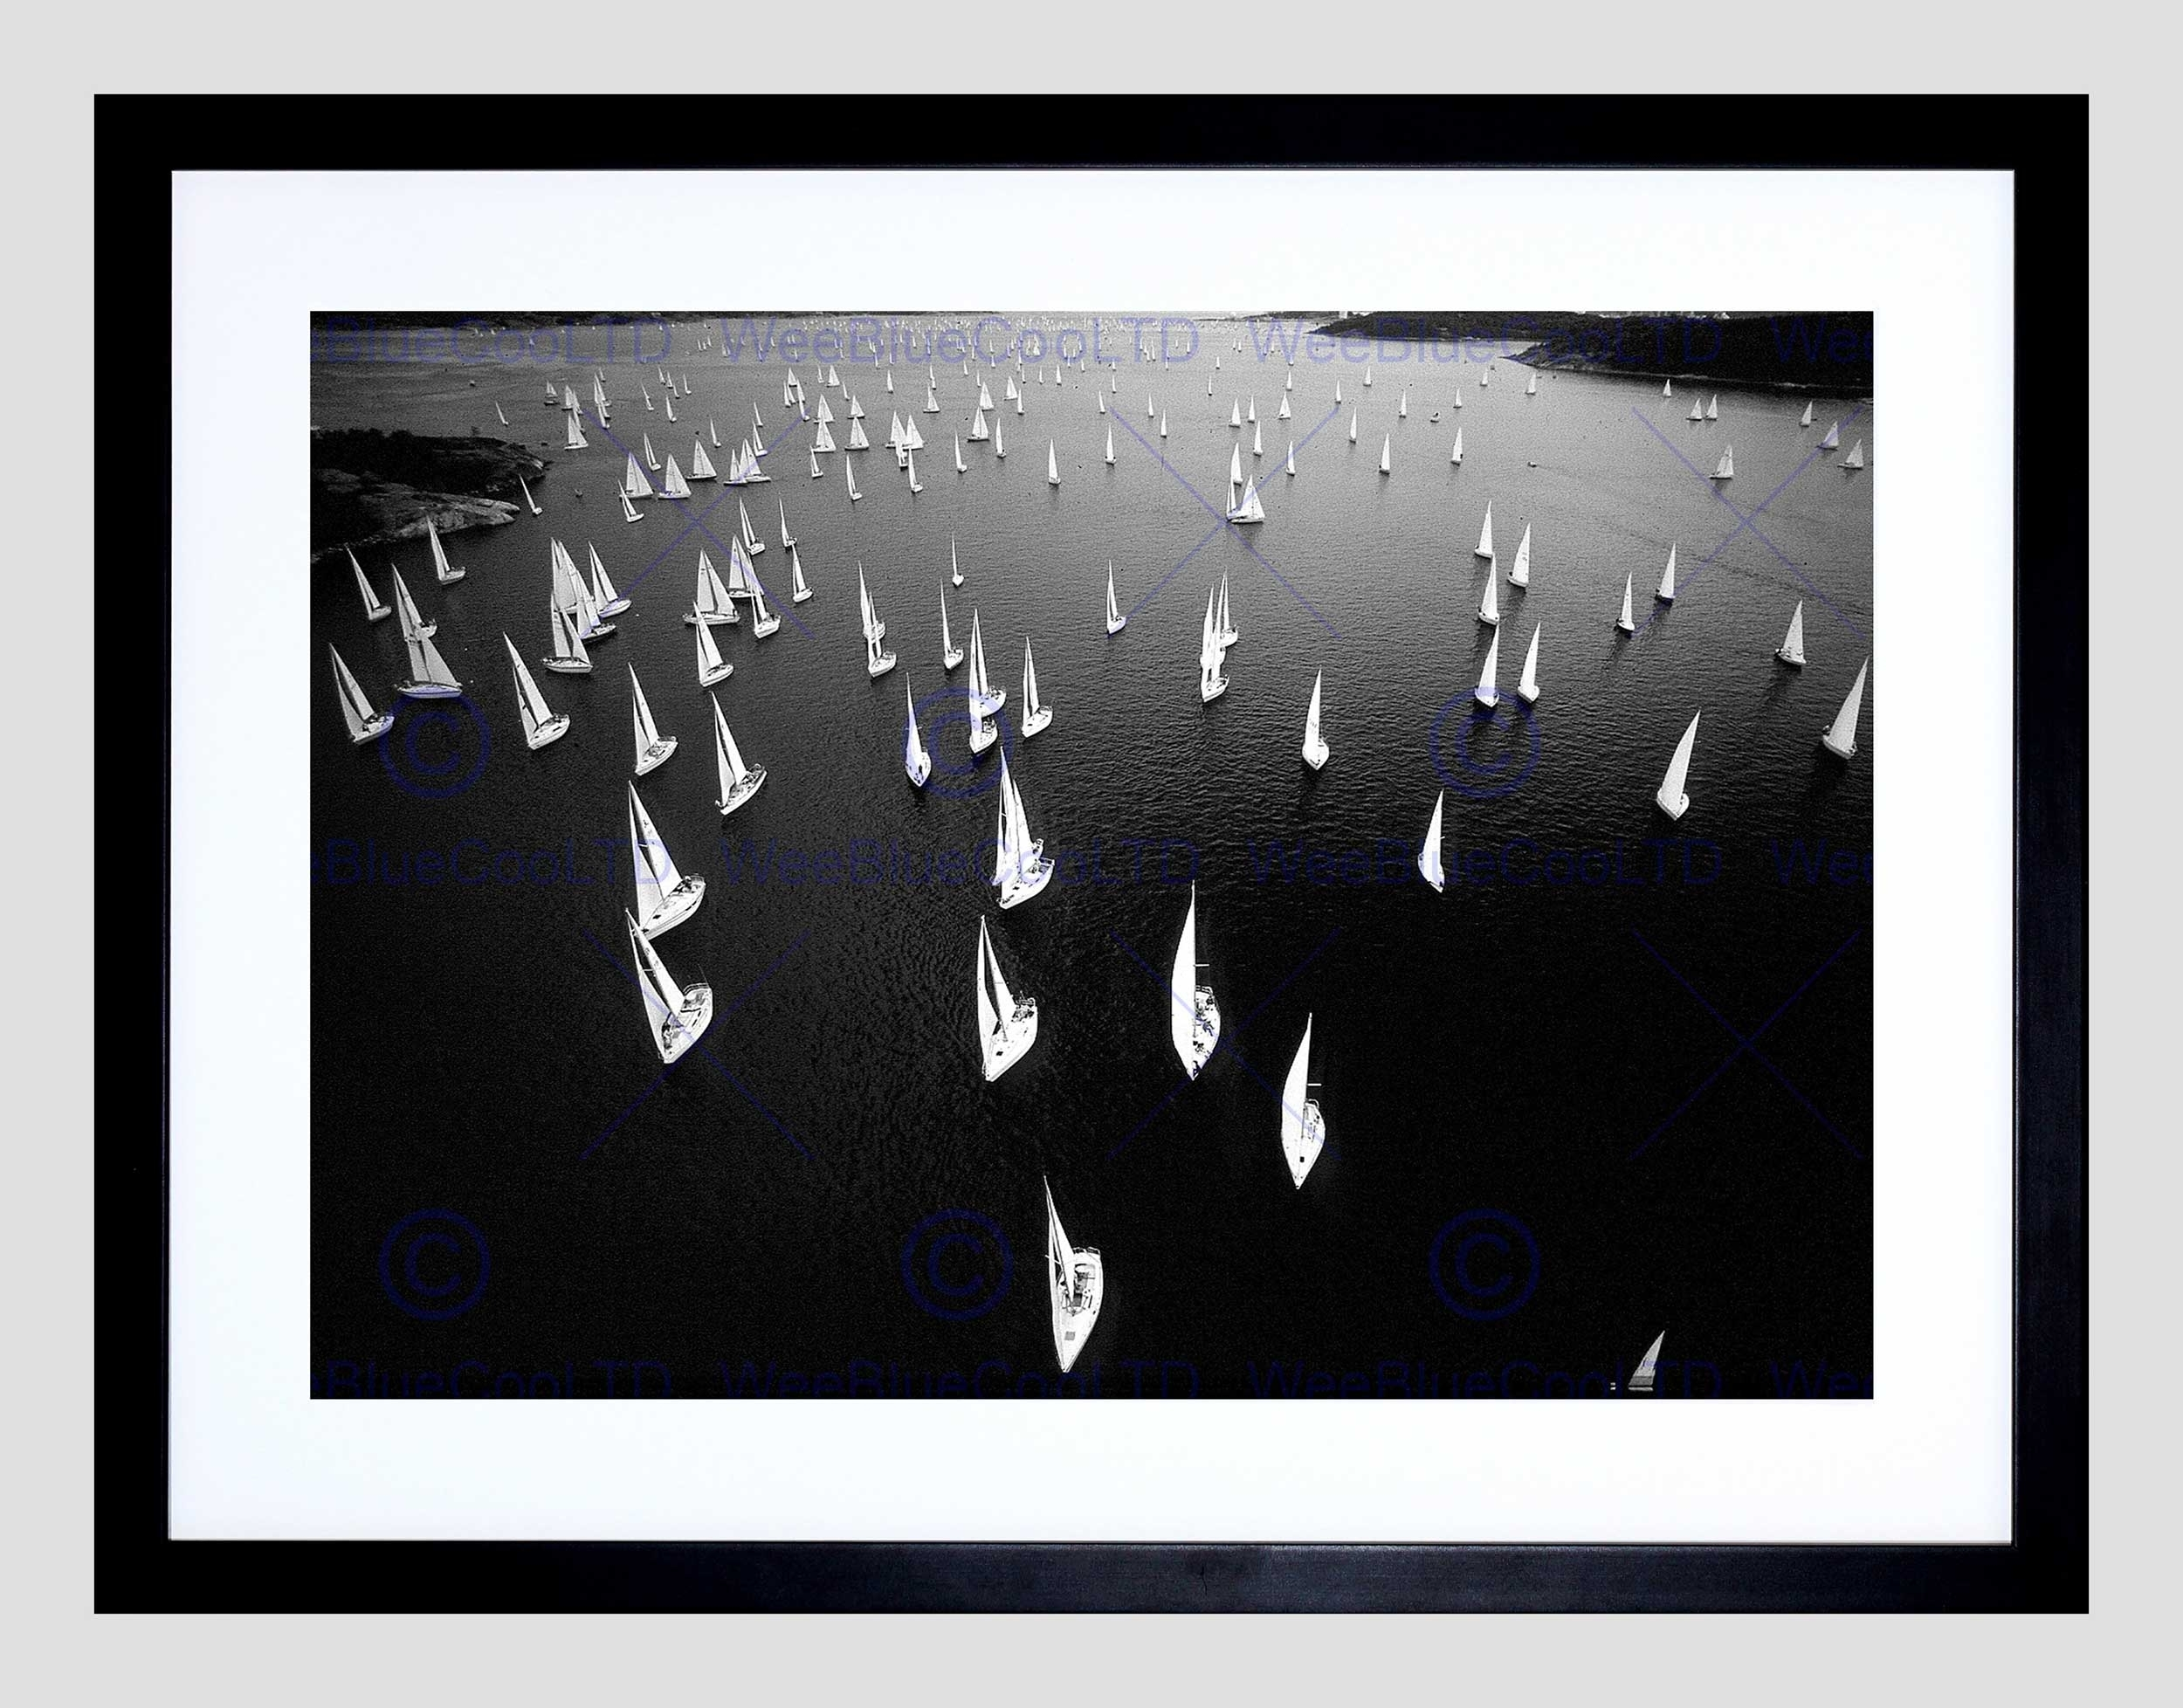 Black White Sail Boat Race Sea Black Frame Framed Art Print Inside Most Recently Released Black And White Framed Art Prints (View 5 of 15)